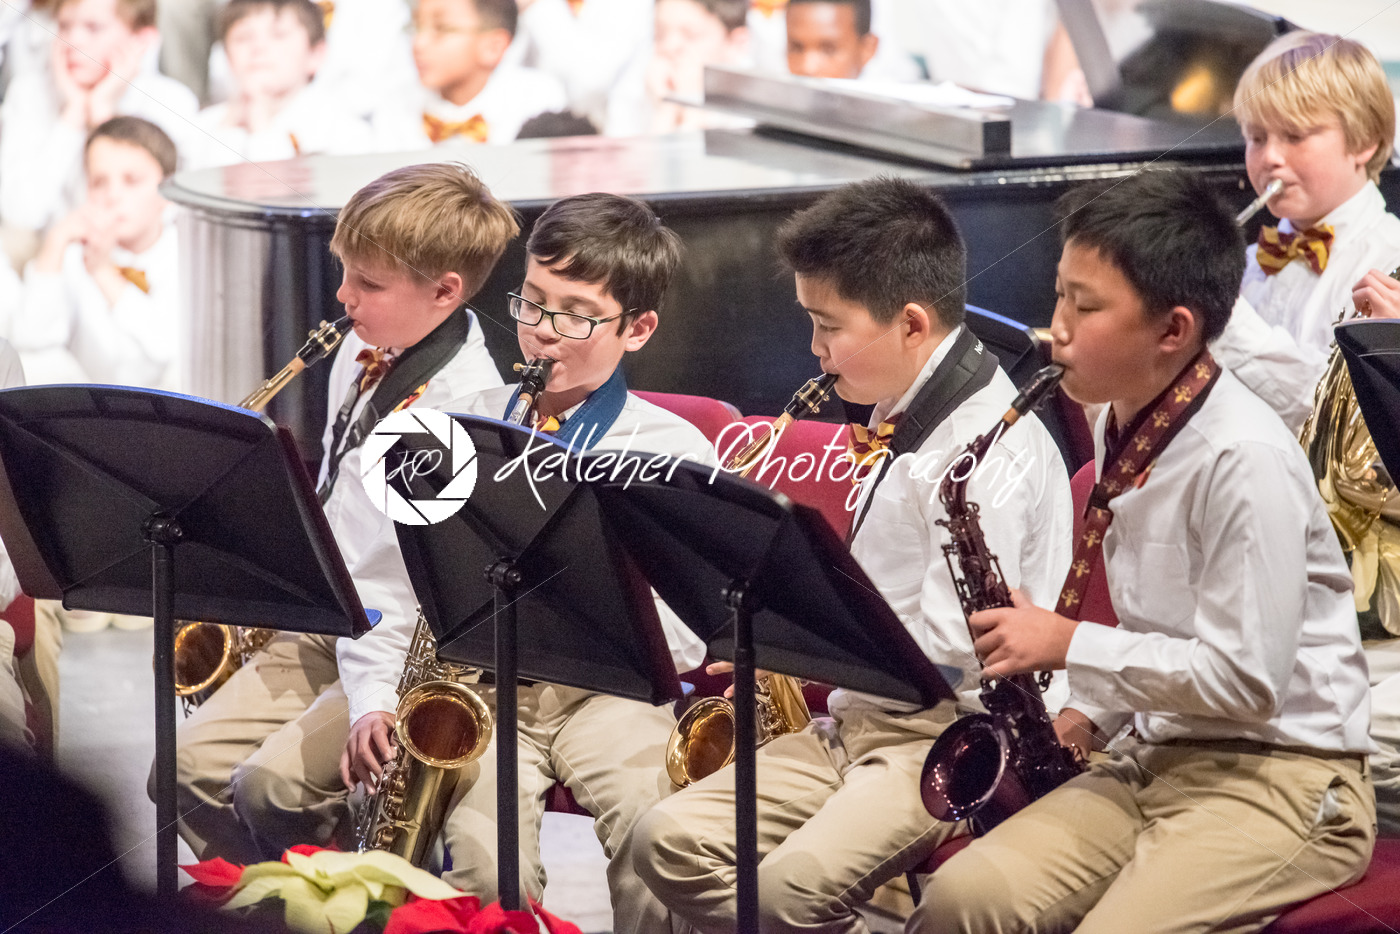 HAVERFORD, PA – DECEMBER 11: Winter Concert at The Haverford School - Kelleher Photography Store